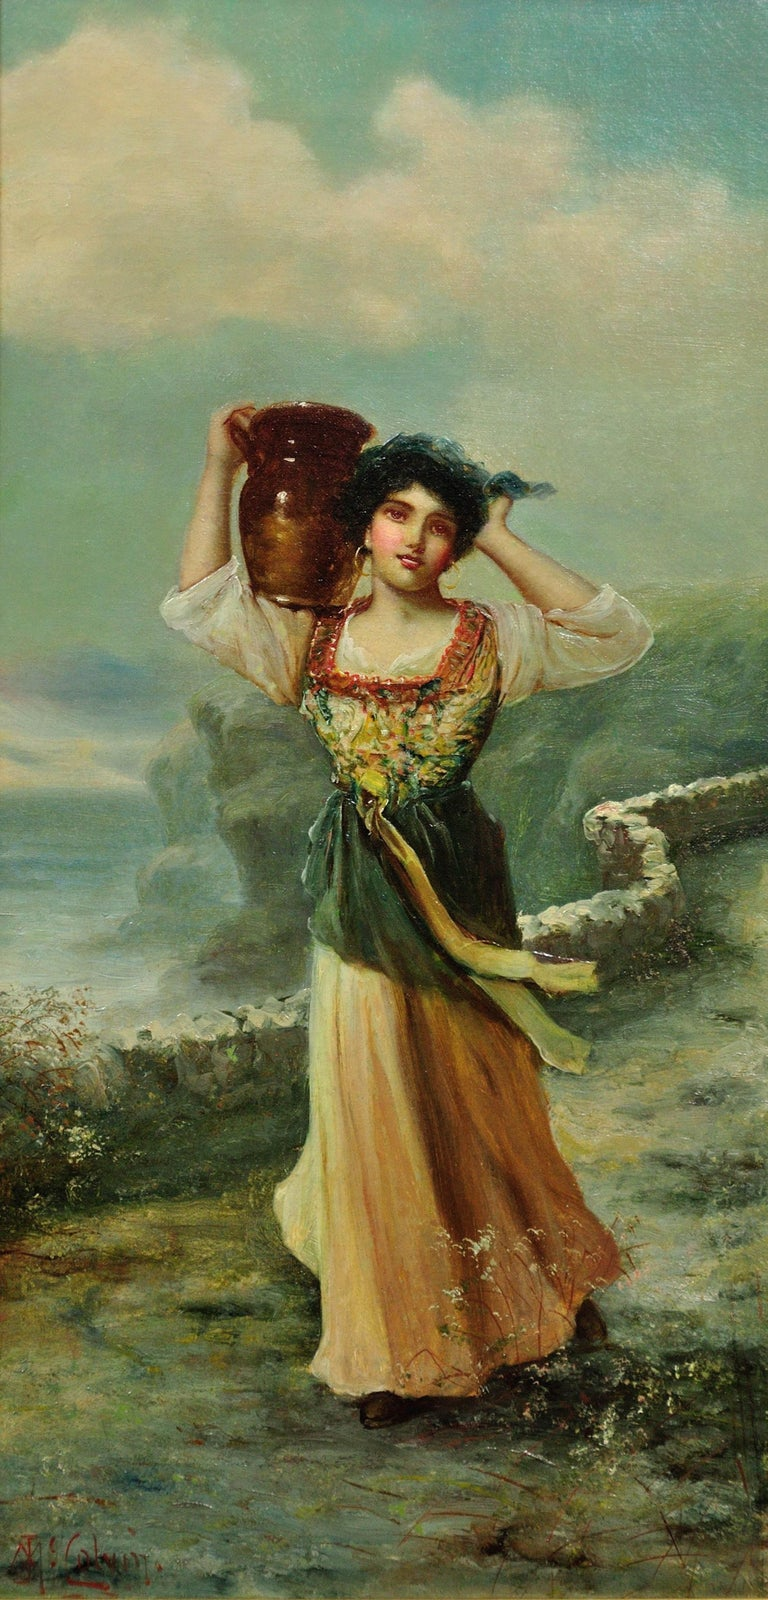 Collecting Water from the Well. North East England Fishing Community. Romantic. - Painting by James Andrew McColvin